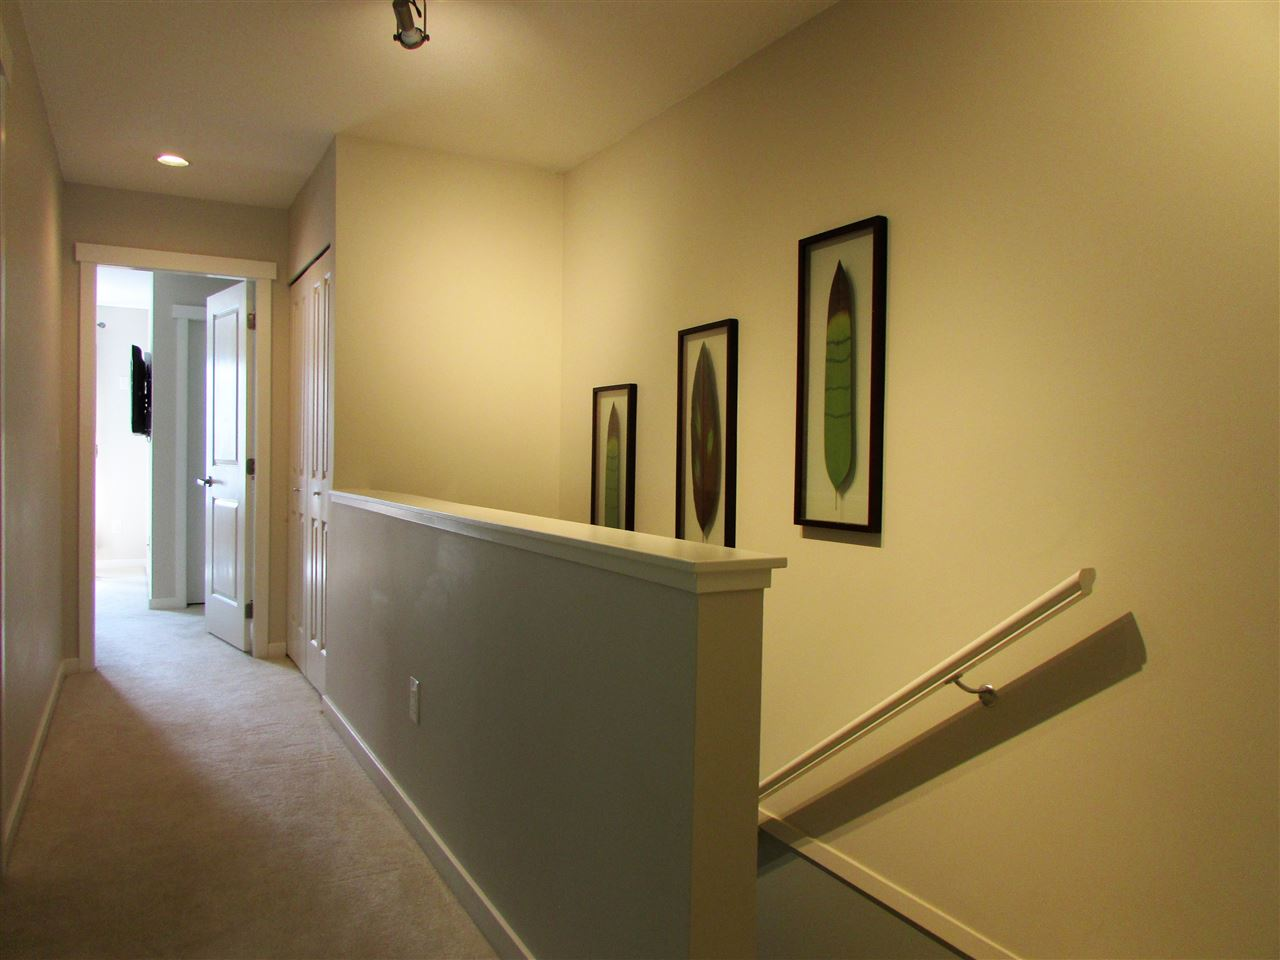 "Photo 18: 10 3470 HIGHLAND Drive in Coquitlam: Burke Mountain Townhouse for sale in ""BRIDLEWOOD"" : MLS® # R2164105"